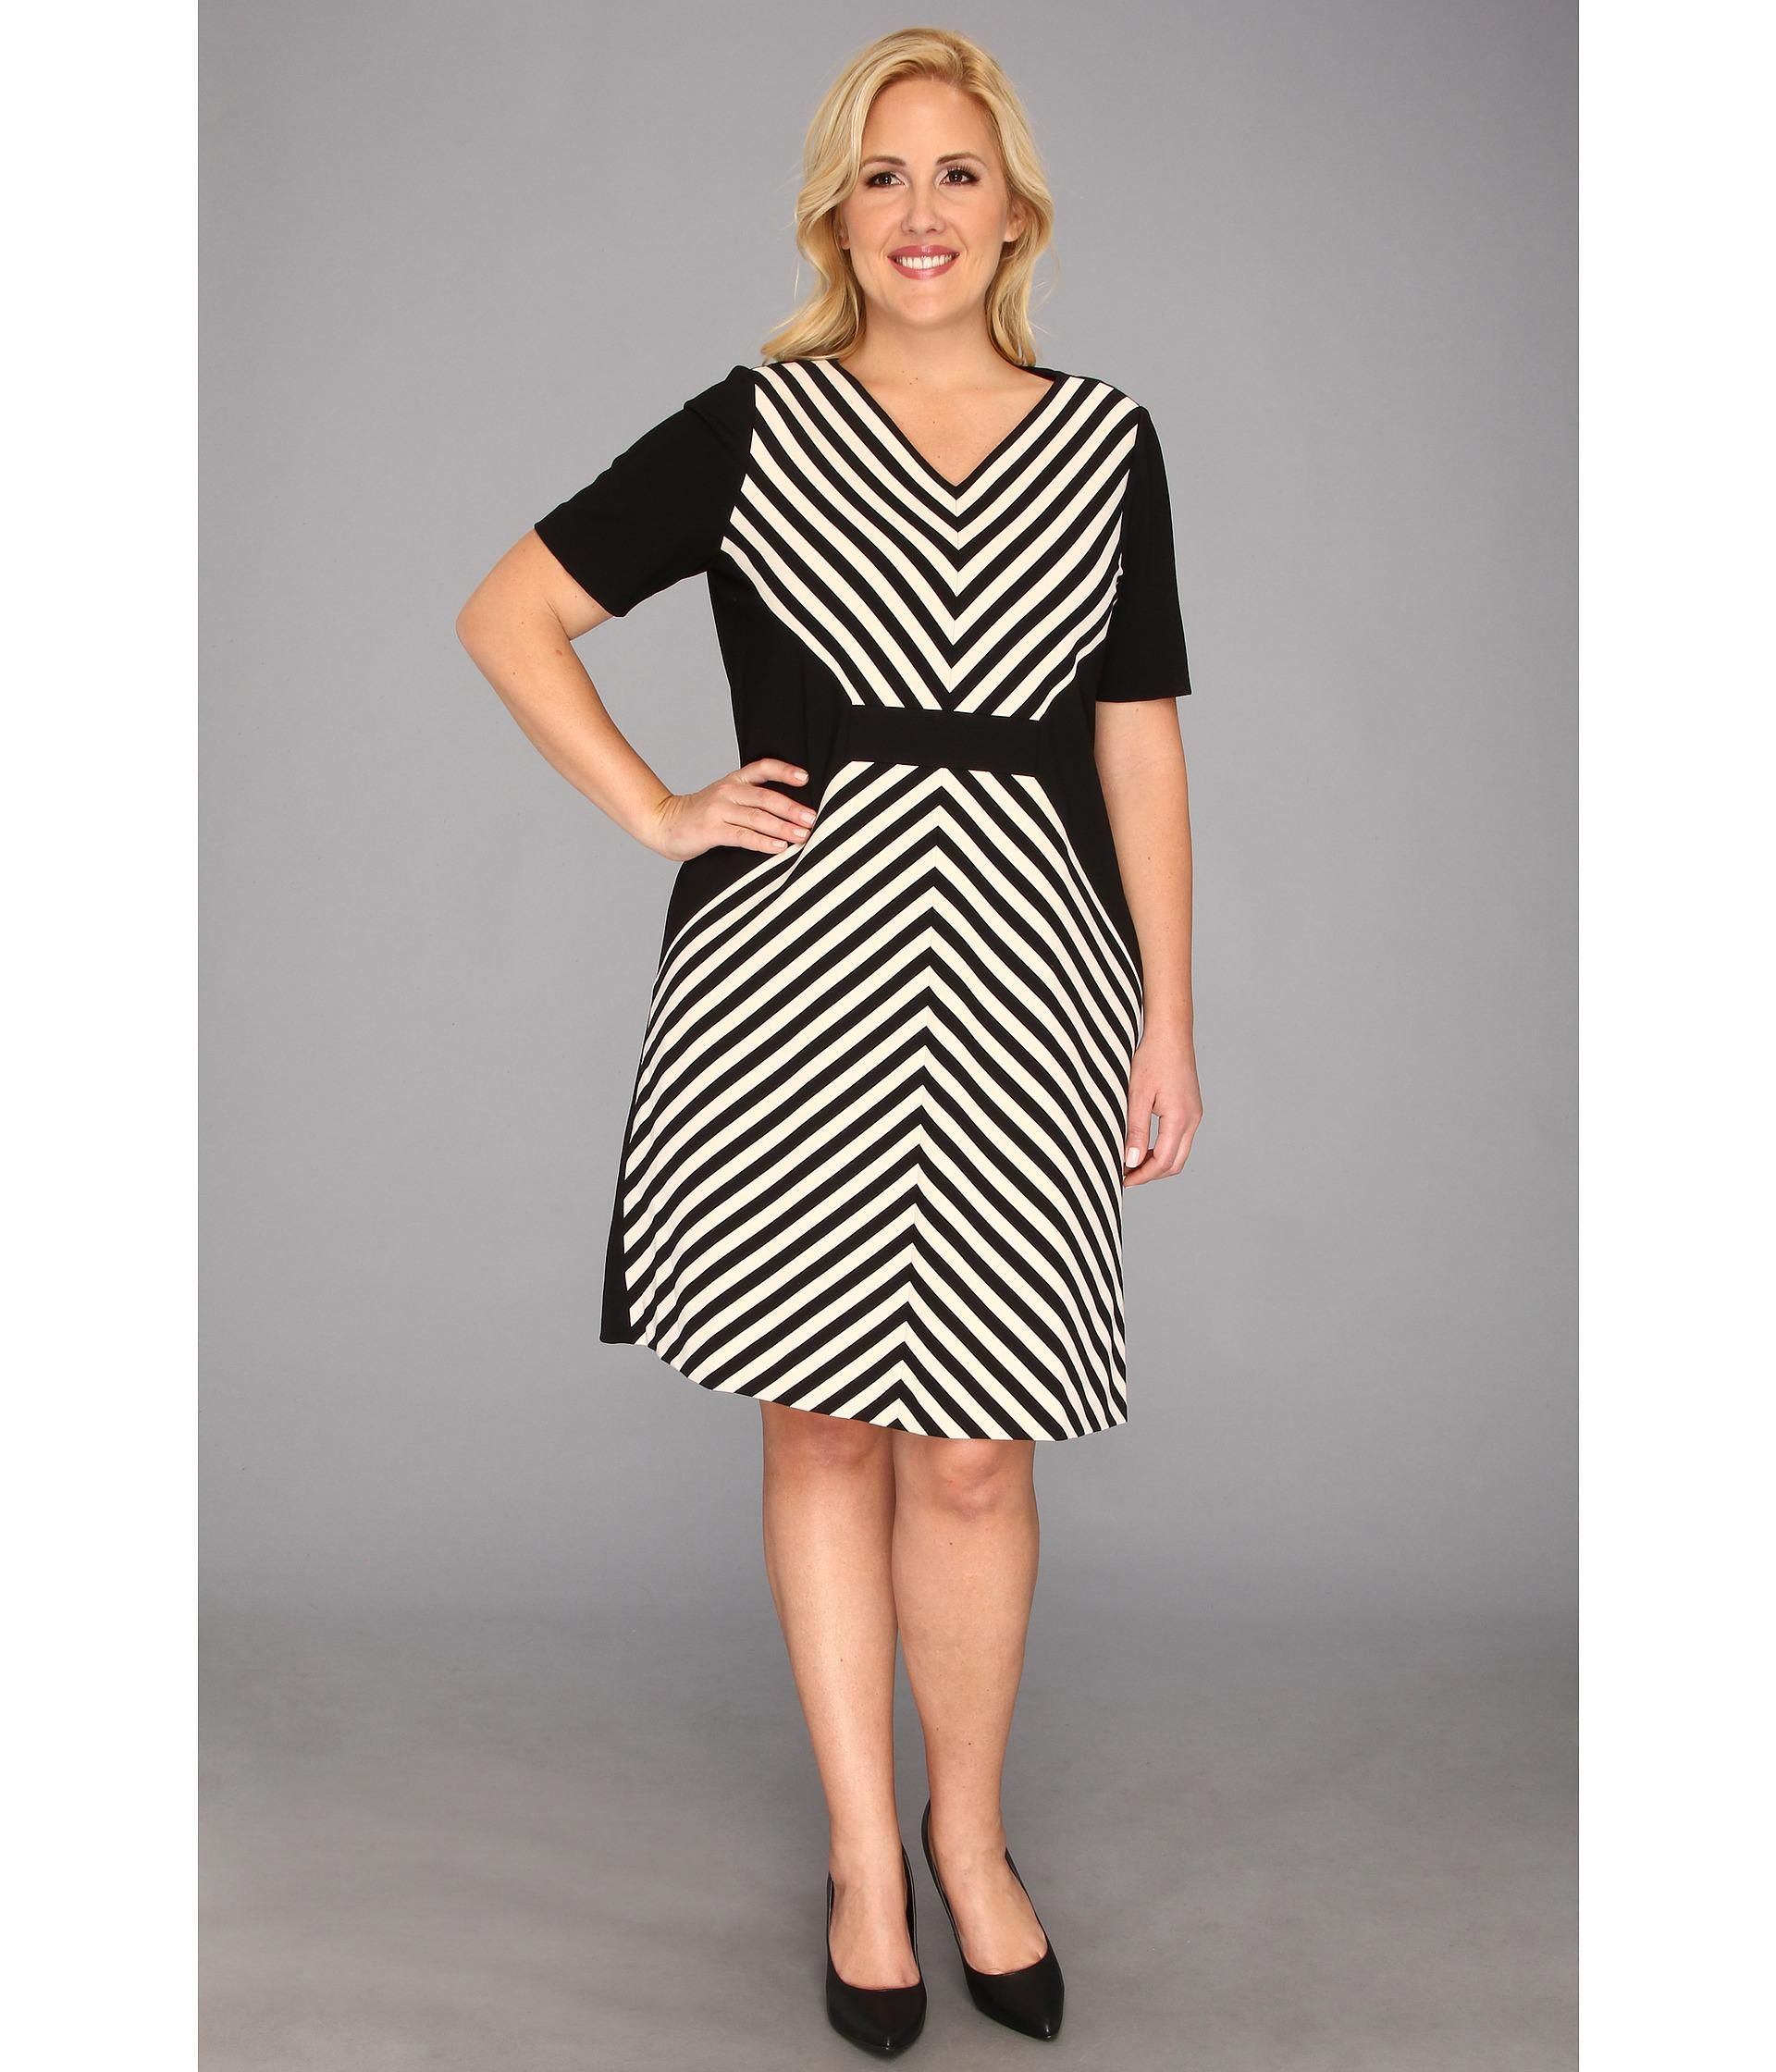 Outfit Yourself In A Tahari By Asl Dress That Delivers Classic